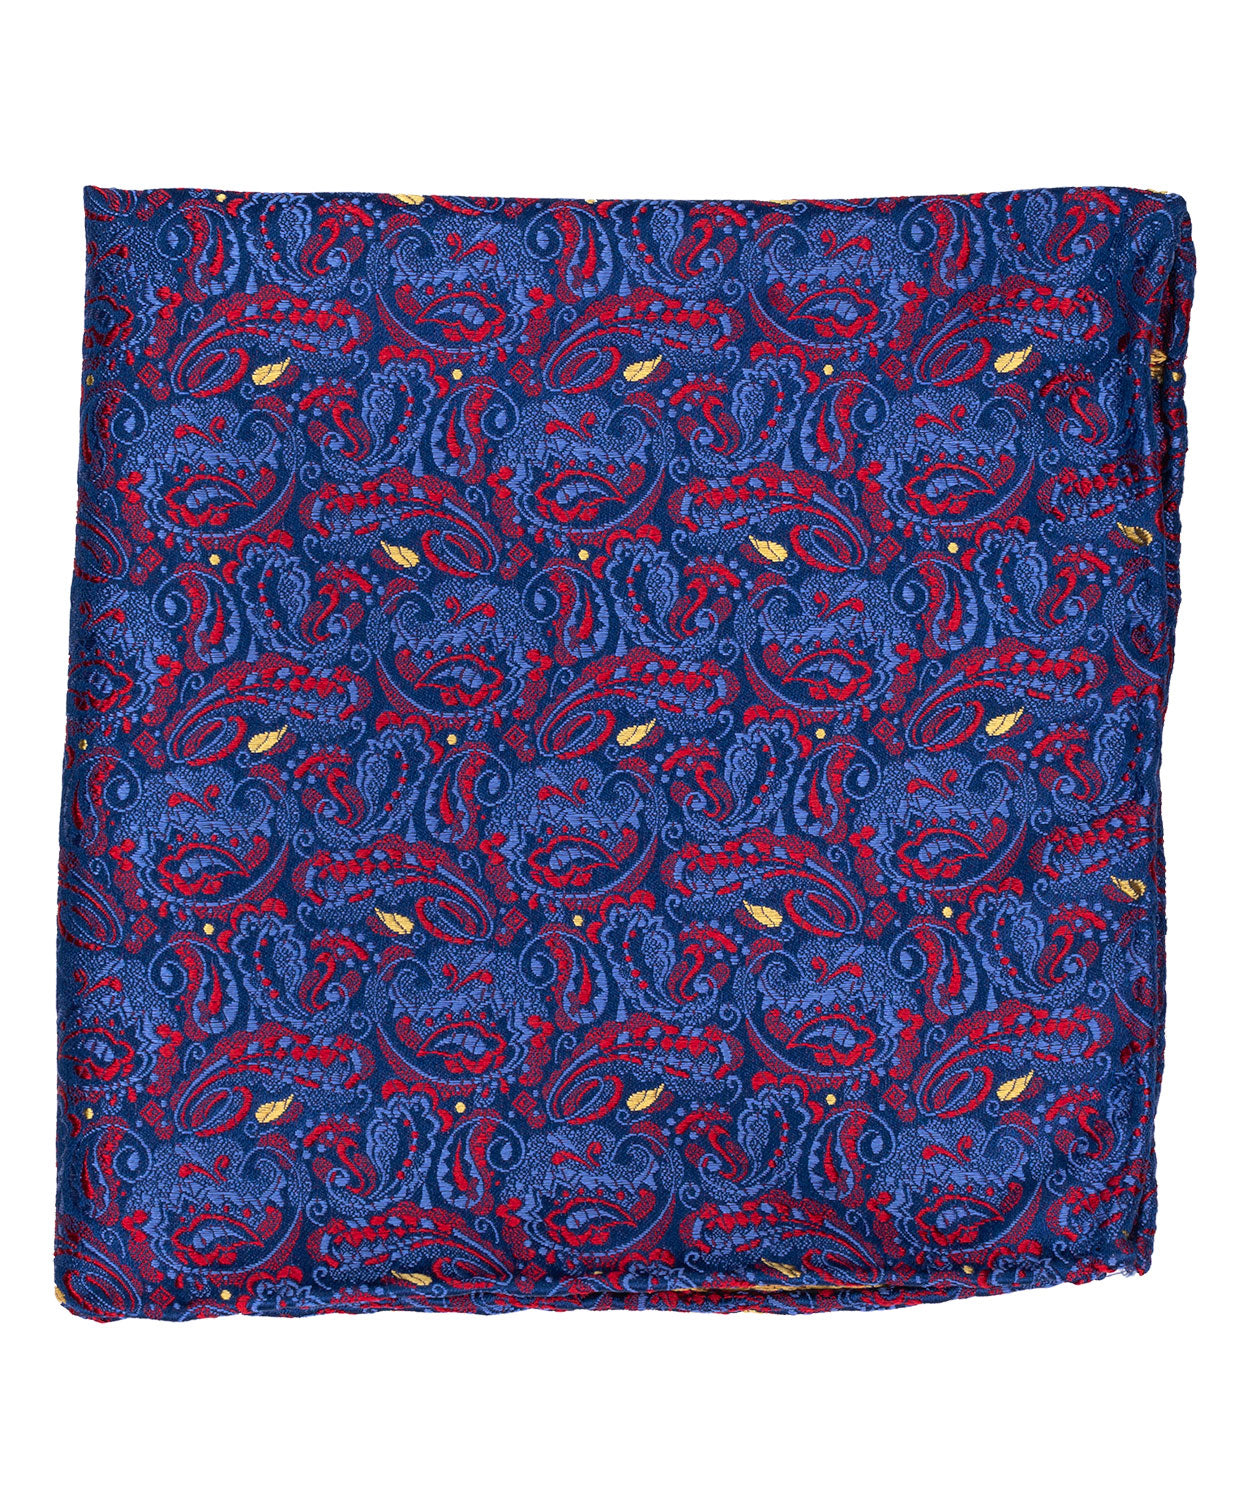 Red/Wine/Royal Blue/Sky Blue Woven Paisley Pocket Square